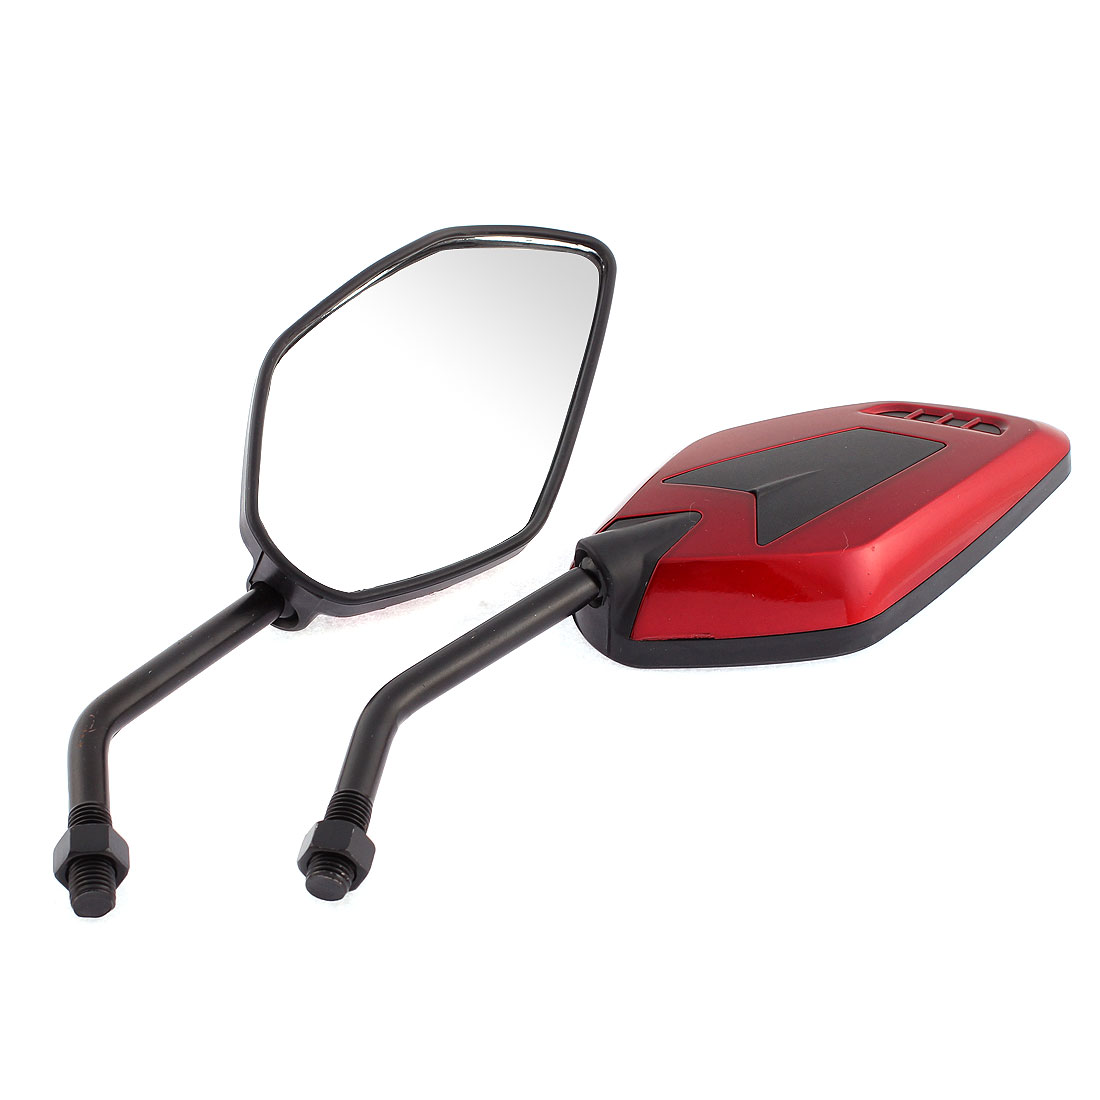 2 Pcs Red Plastic Shell Adjustable Side Rearview Blind Spot Mirrors for Motorcycle